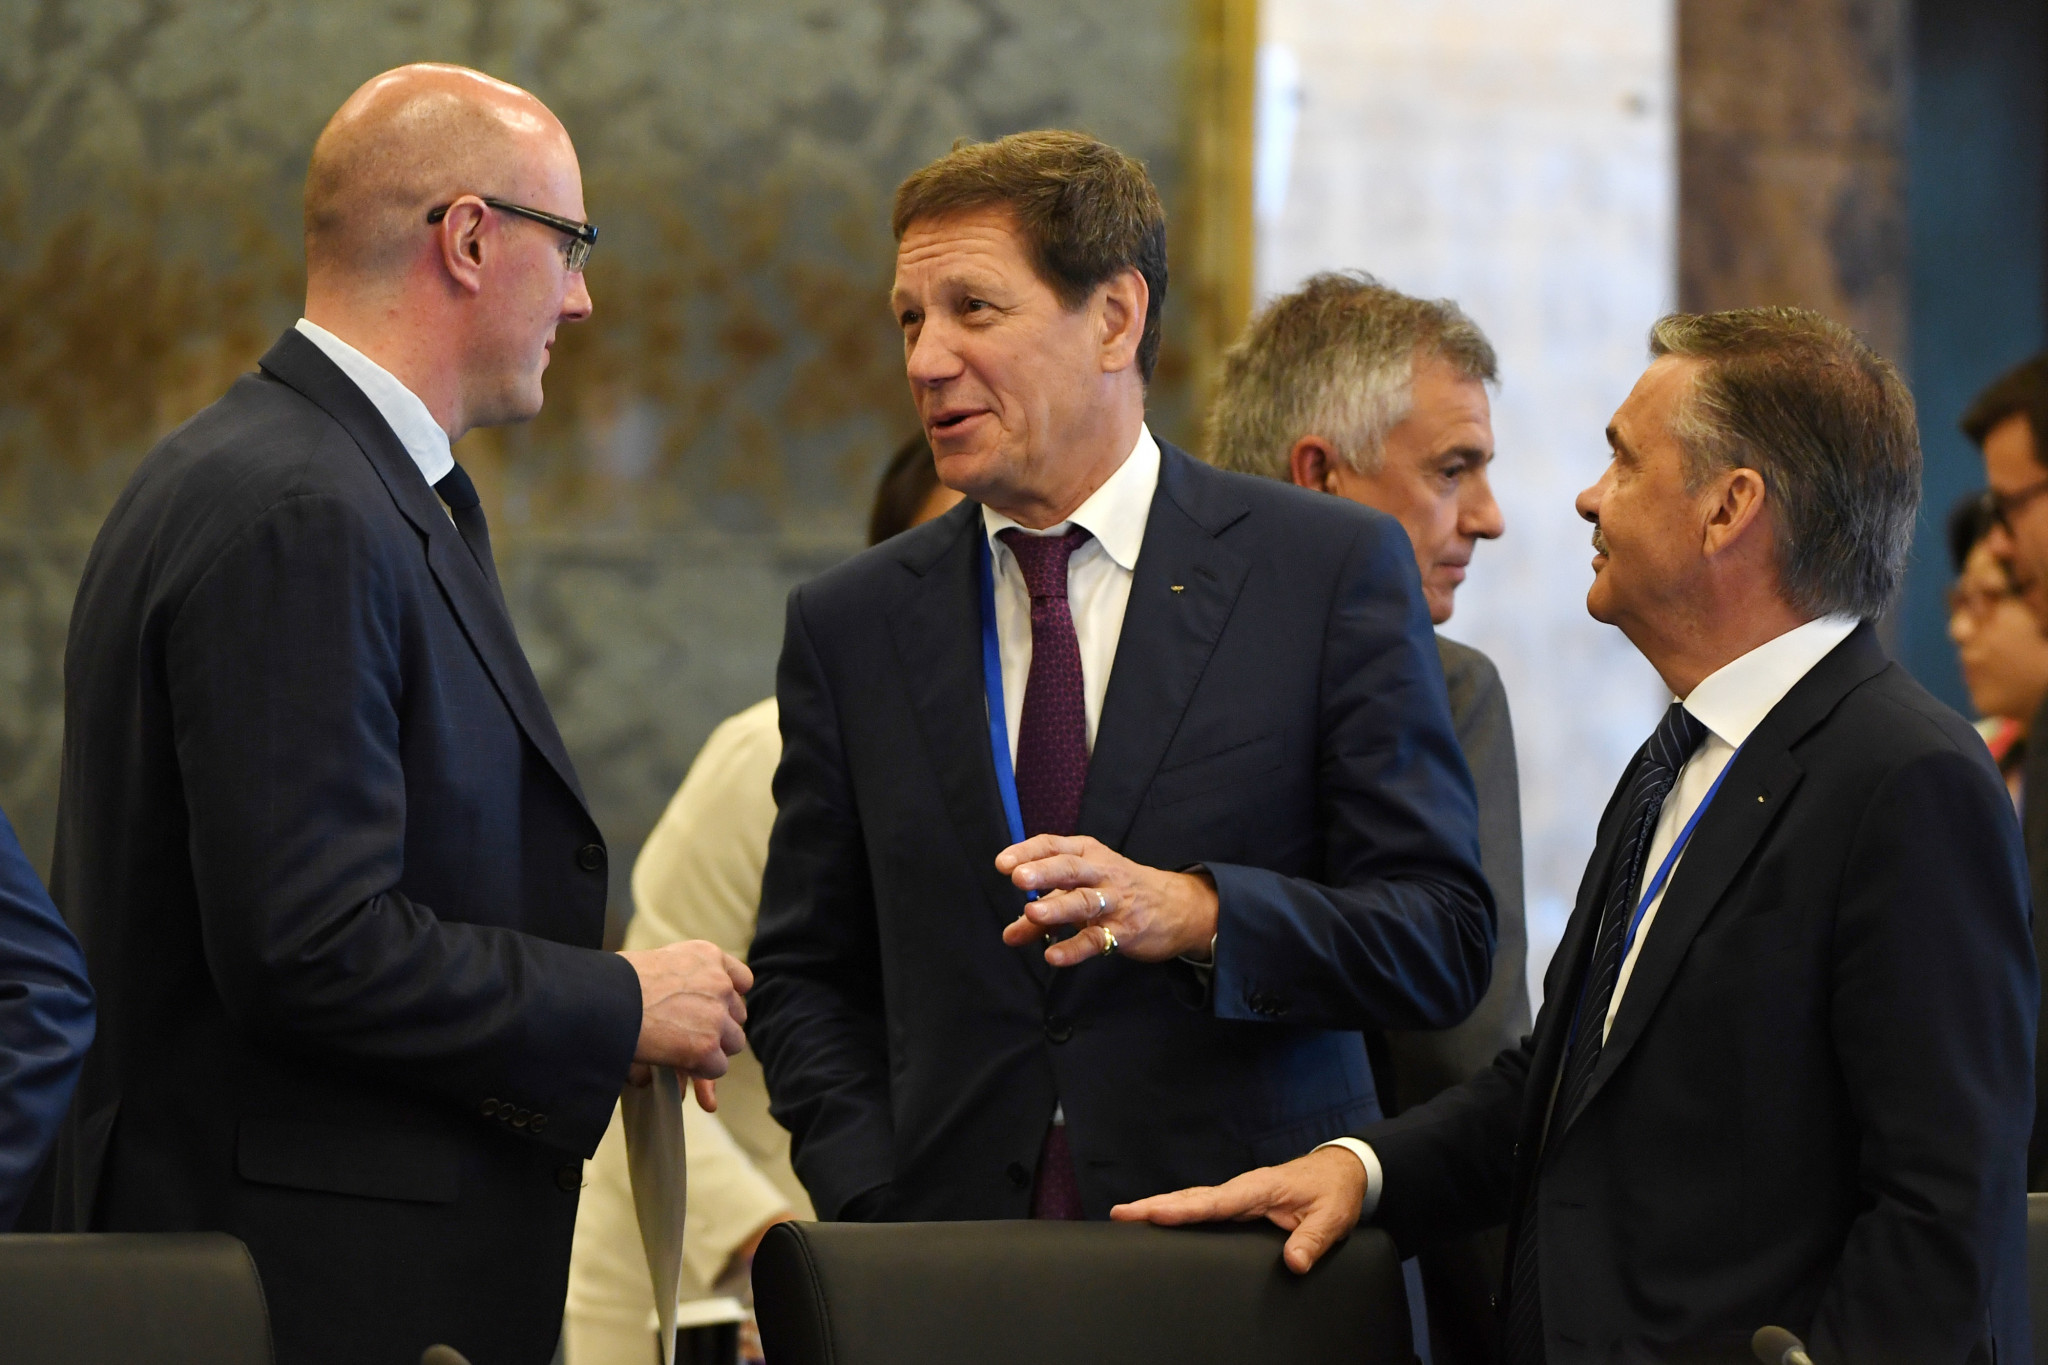 Ex-Sochi 2014 President and chief executive Dimitry Chernyshenko, left, has been sacked as a member of the Beijing 2022 Coordination Commission while Alexander Zhukov, centre, has been suspended as an IOC member ©Getty Images